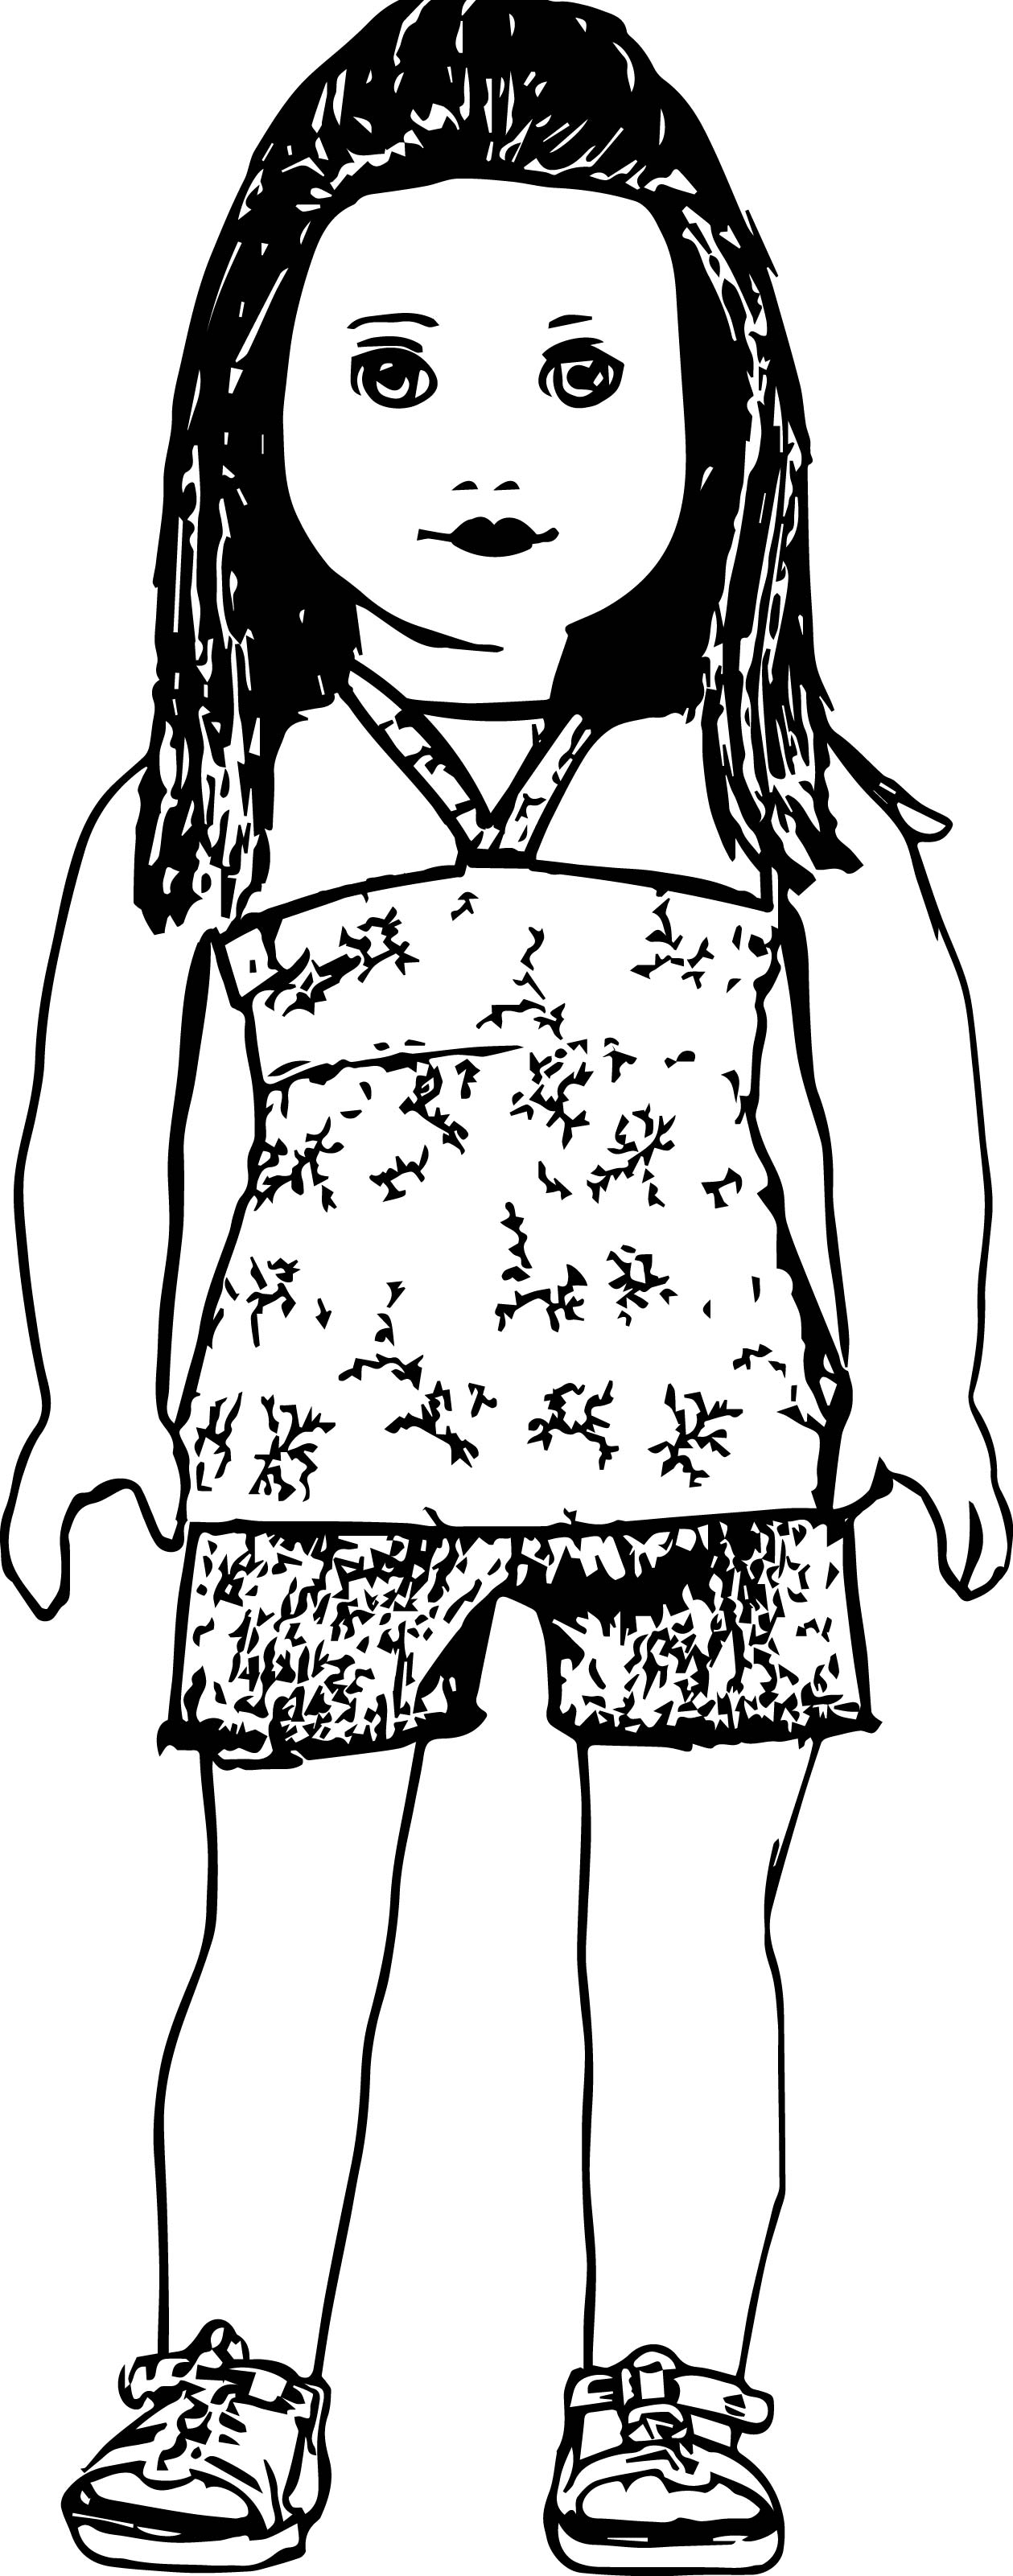 doll coloring sheets paper dolls coloring pages download and print paper dolls sheets coloring doll